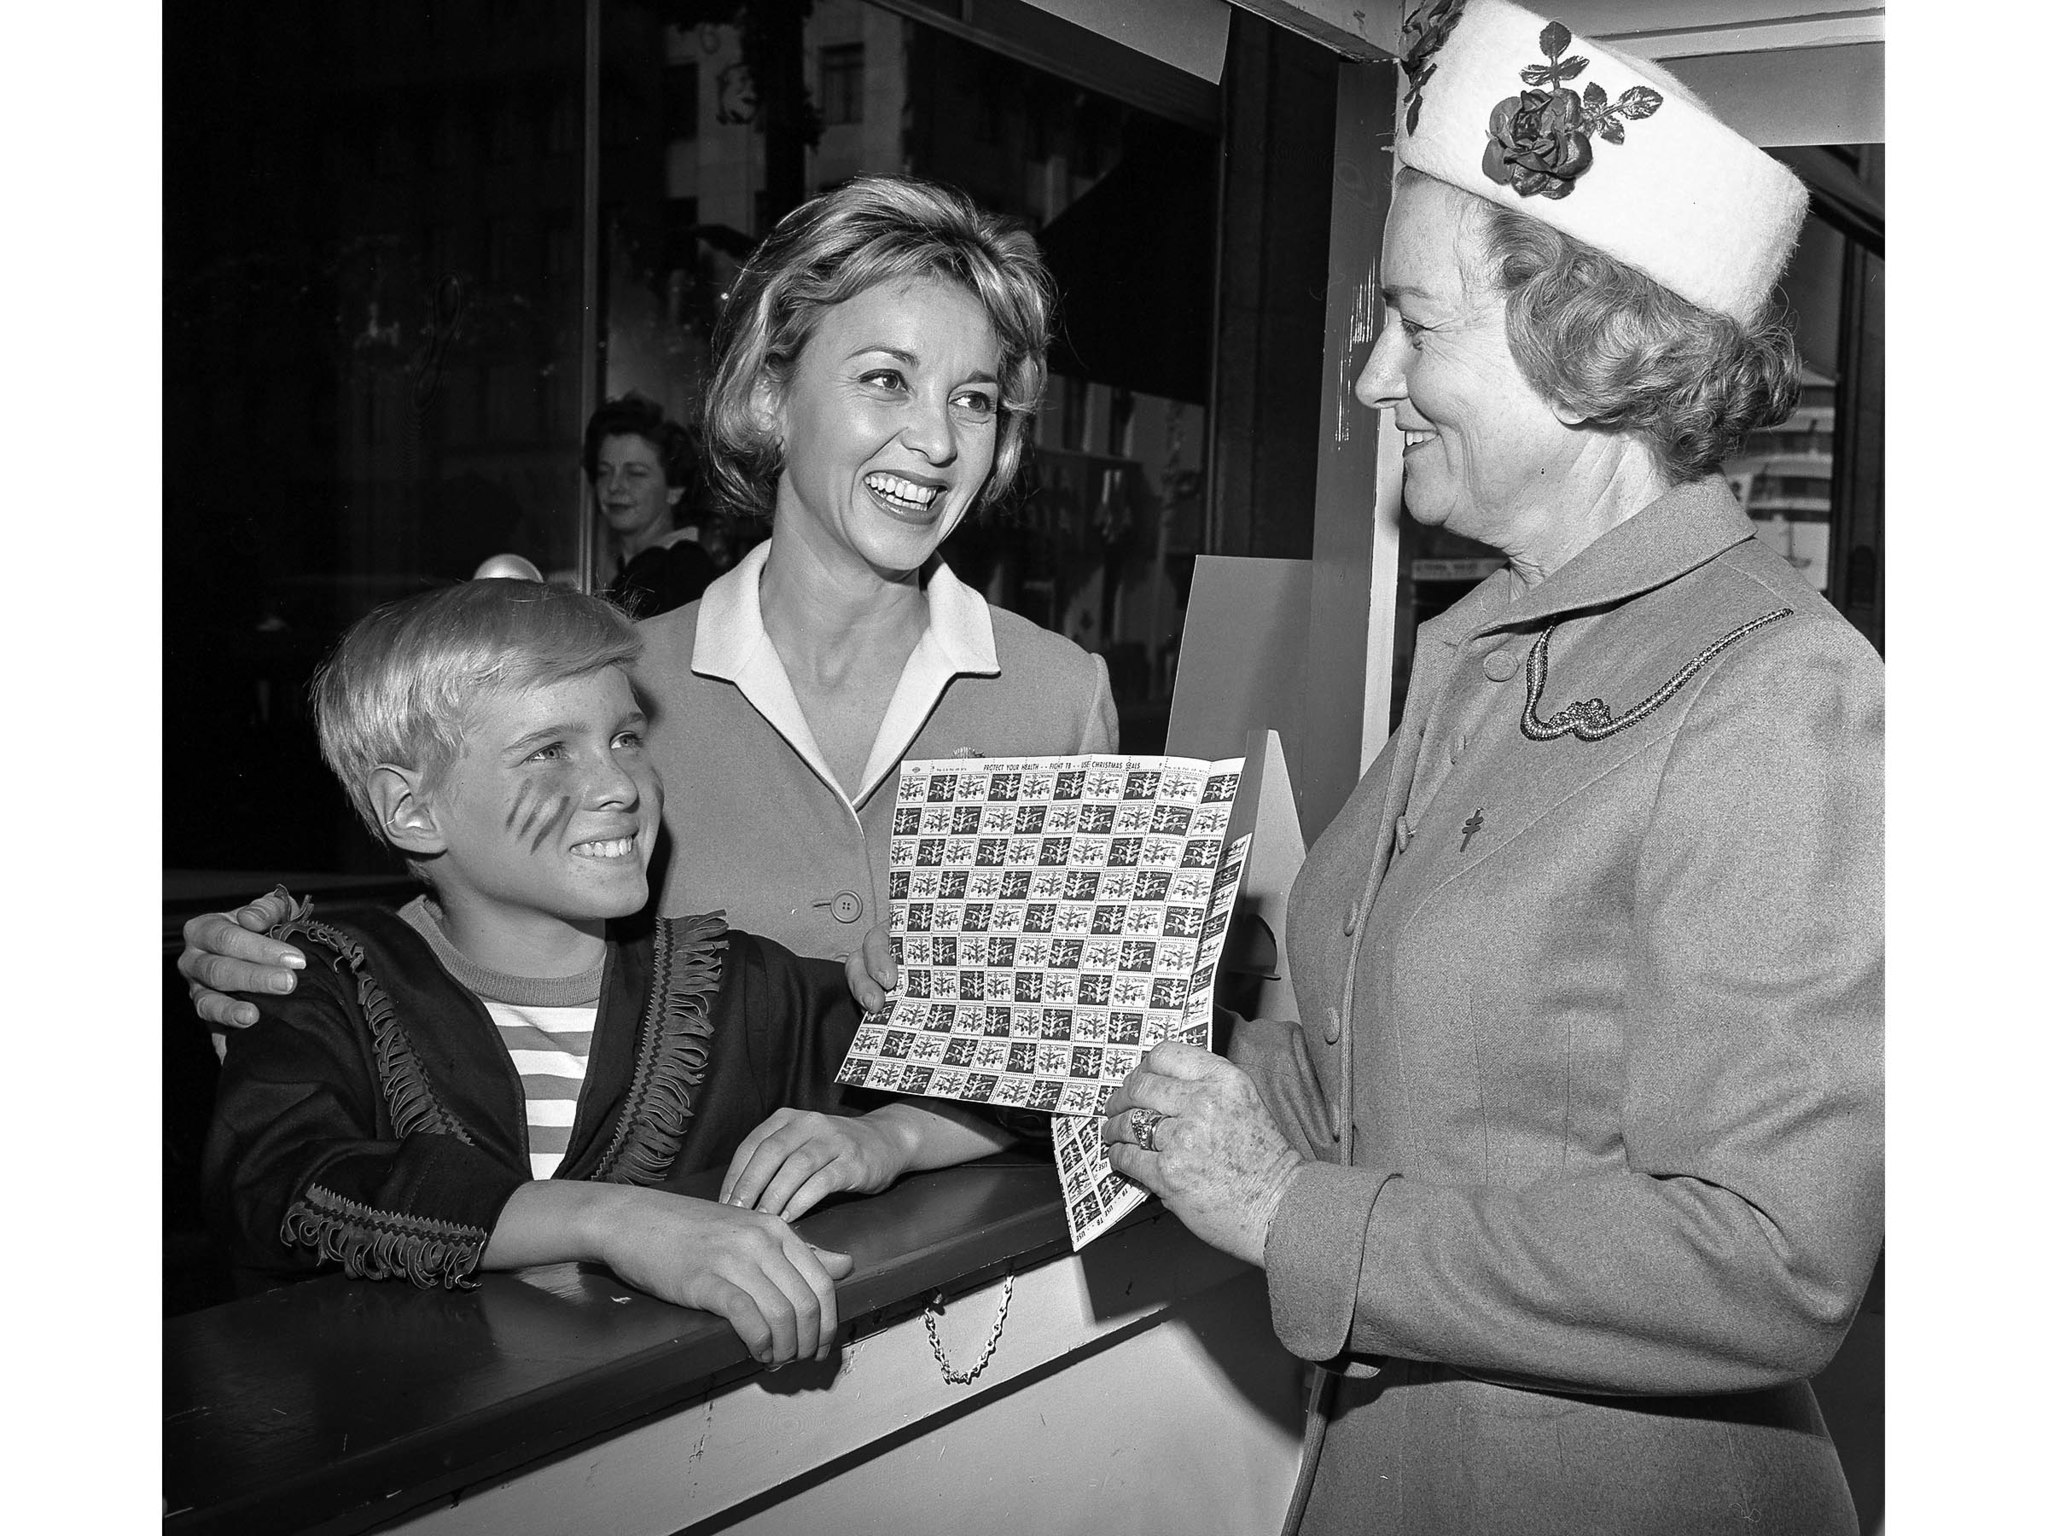 November 1962: Jay North left, still wears Dennis the Menace makeup as he helps actress Beverly Garl